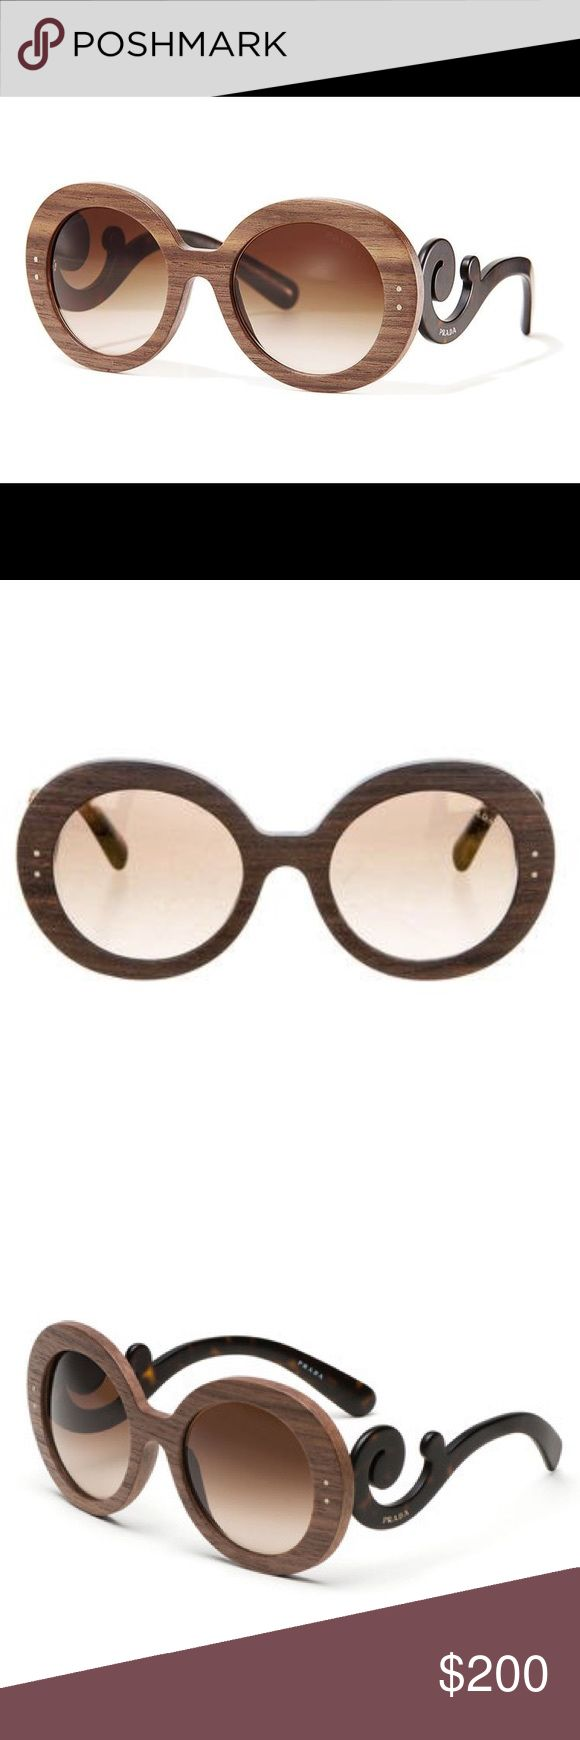 NWOT Prada PR 27RS BAROQUE Women's Sunglasses Brand new w/out tags, never worn! Perf condition.  Spring is just around the corner & that means festival season! What would Coachella be without these GORG Prada's shading your view?  From the Raw Edition Collection. Dark brown & caramel w/ wooden face frame, brown tinted lenses & tortoise decorative arms. No case included.  Frame Color: Nut Canaletto  Lens Color: Brown Gradient Polarized Lens: No  Frame Shape: Round   Lens Width: 55 mm Bridge…